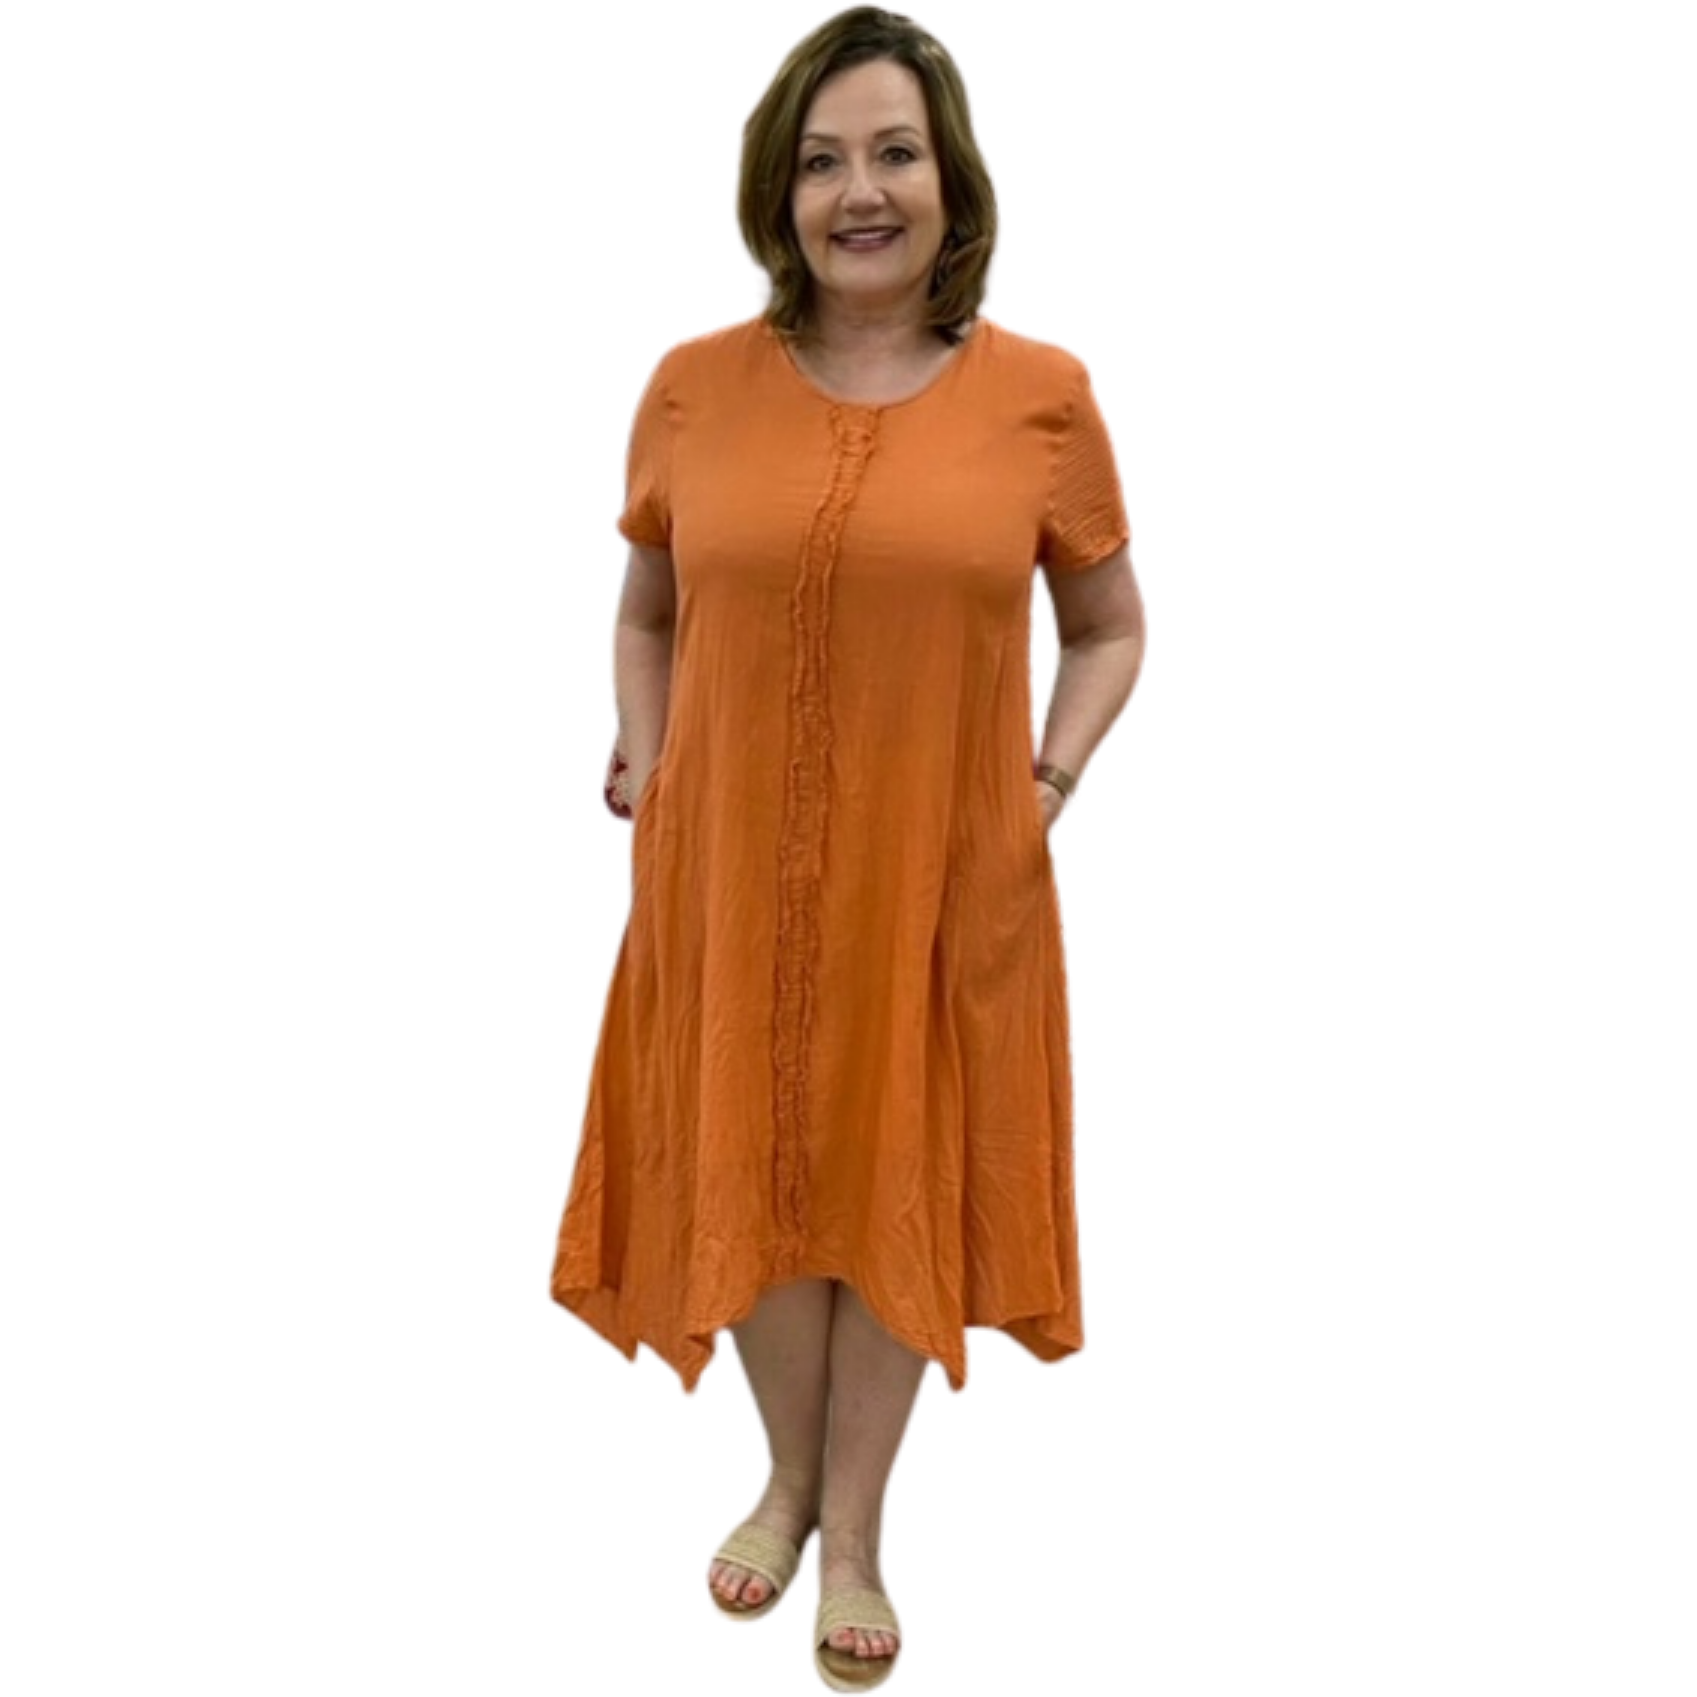 Namastai Short sleeve drop side Dress in Apricot